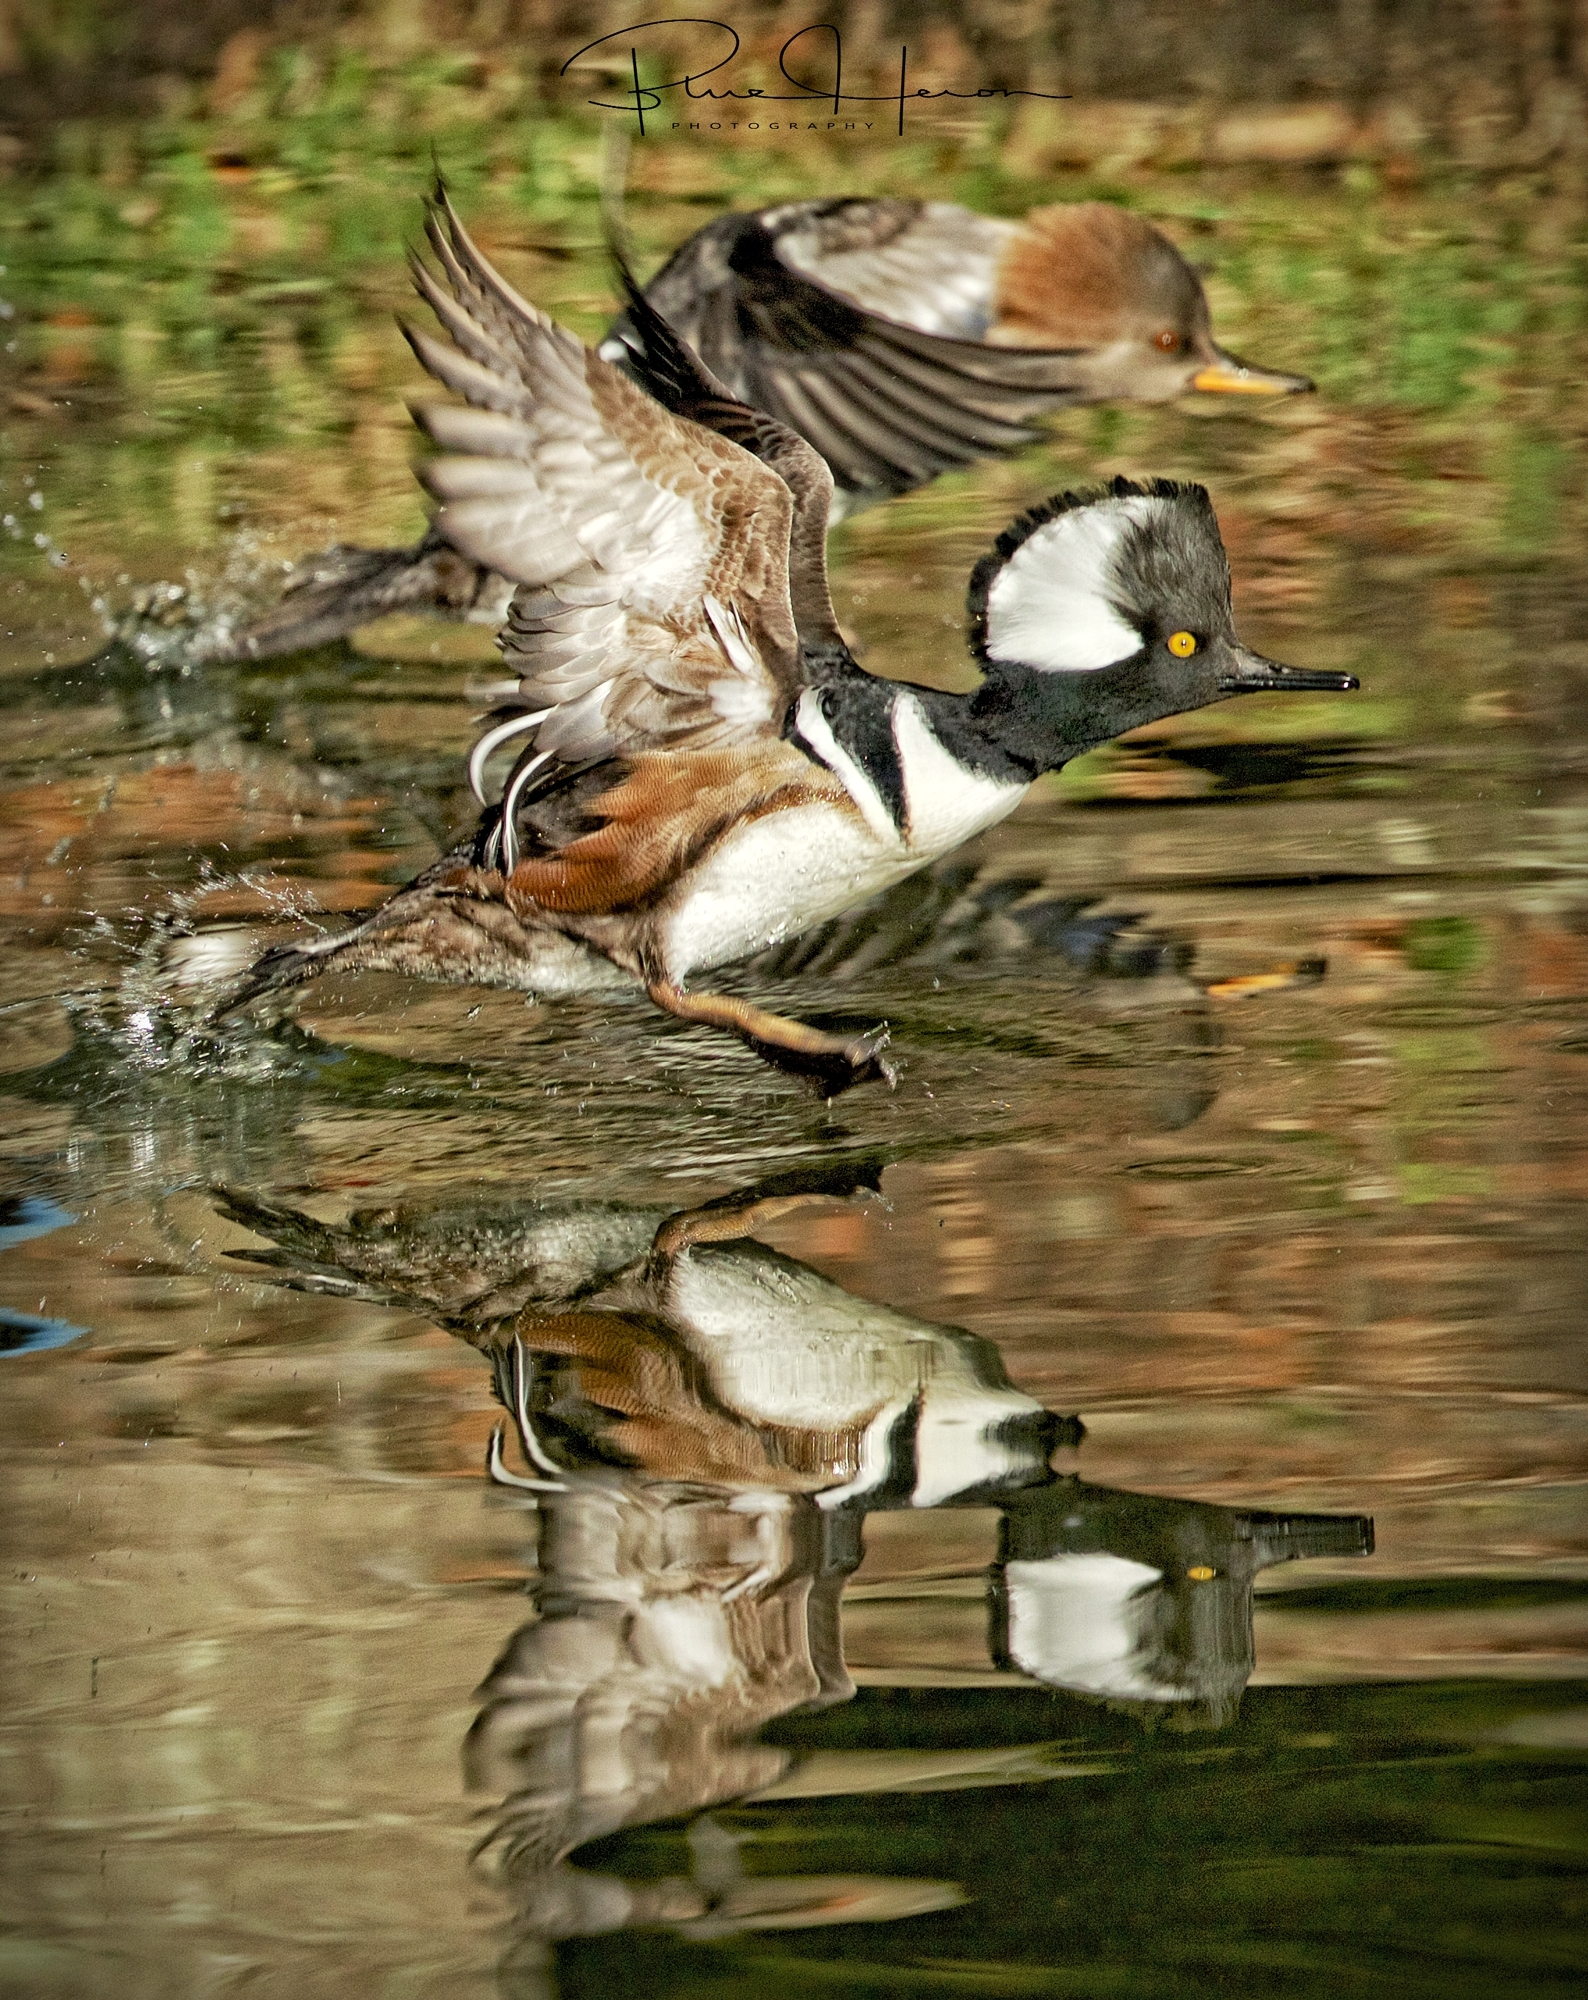 The male Hooded Merganser takes off too..until next time Mr. Hoodie